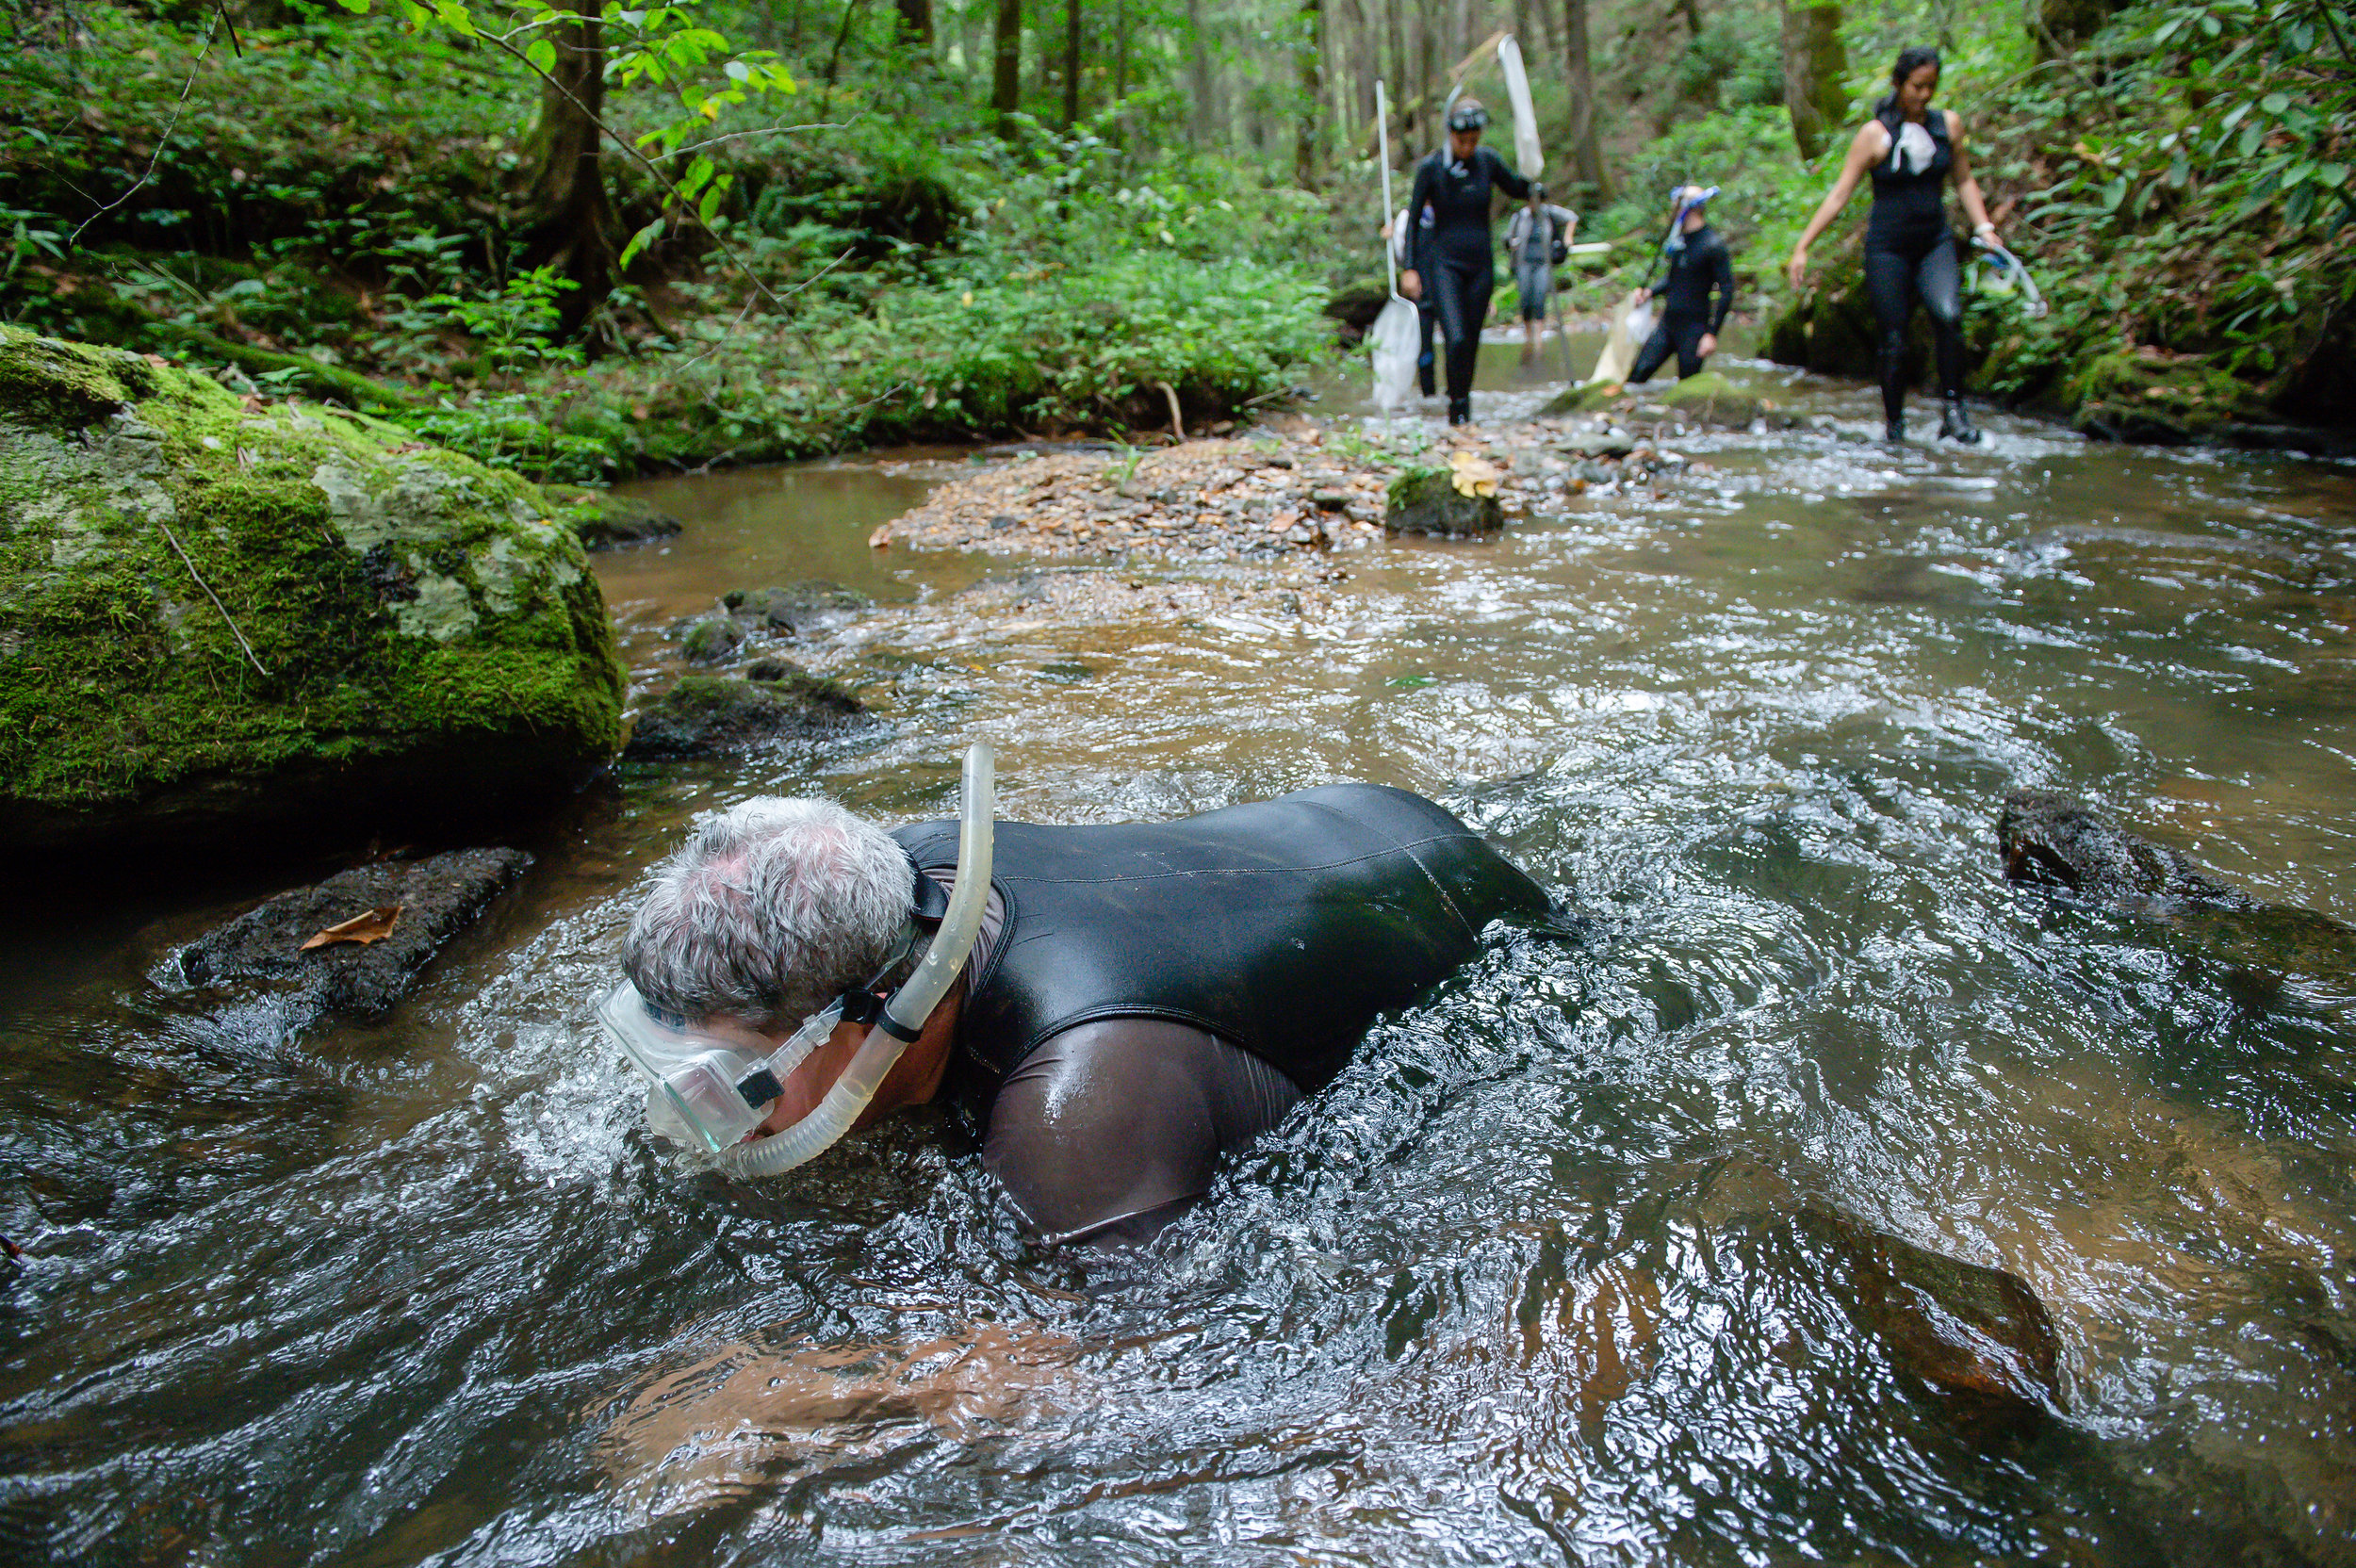 Georgia Department of Natural Resources wildlife biologist Thomas Floyd (foreground) and other biologists and ecologists participate in a scheduled survey of the Eastern hellbender in the Chattahoochee National Forest in North Georgia Friday, Aug. 31, 2018.